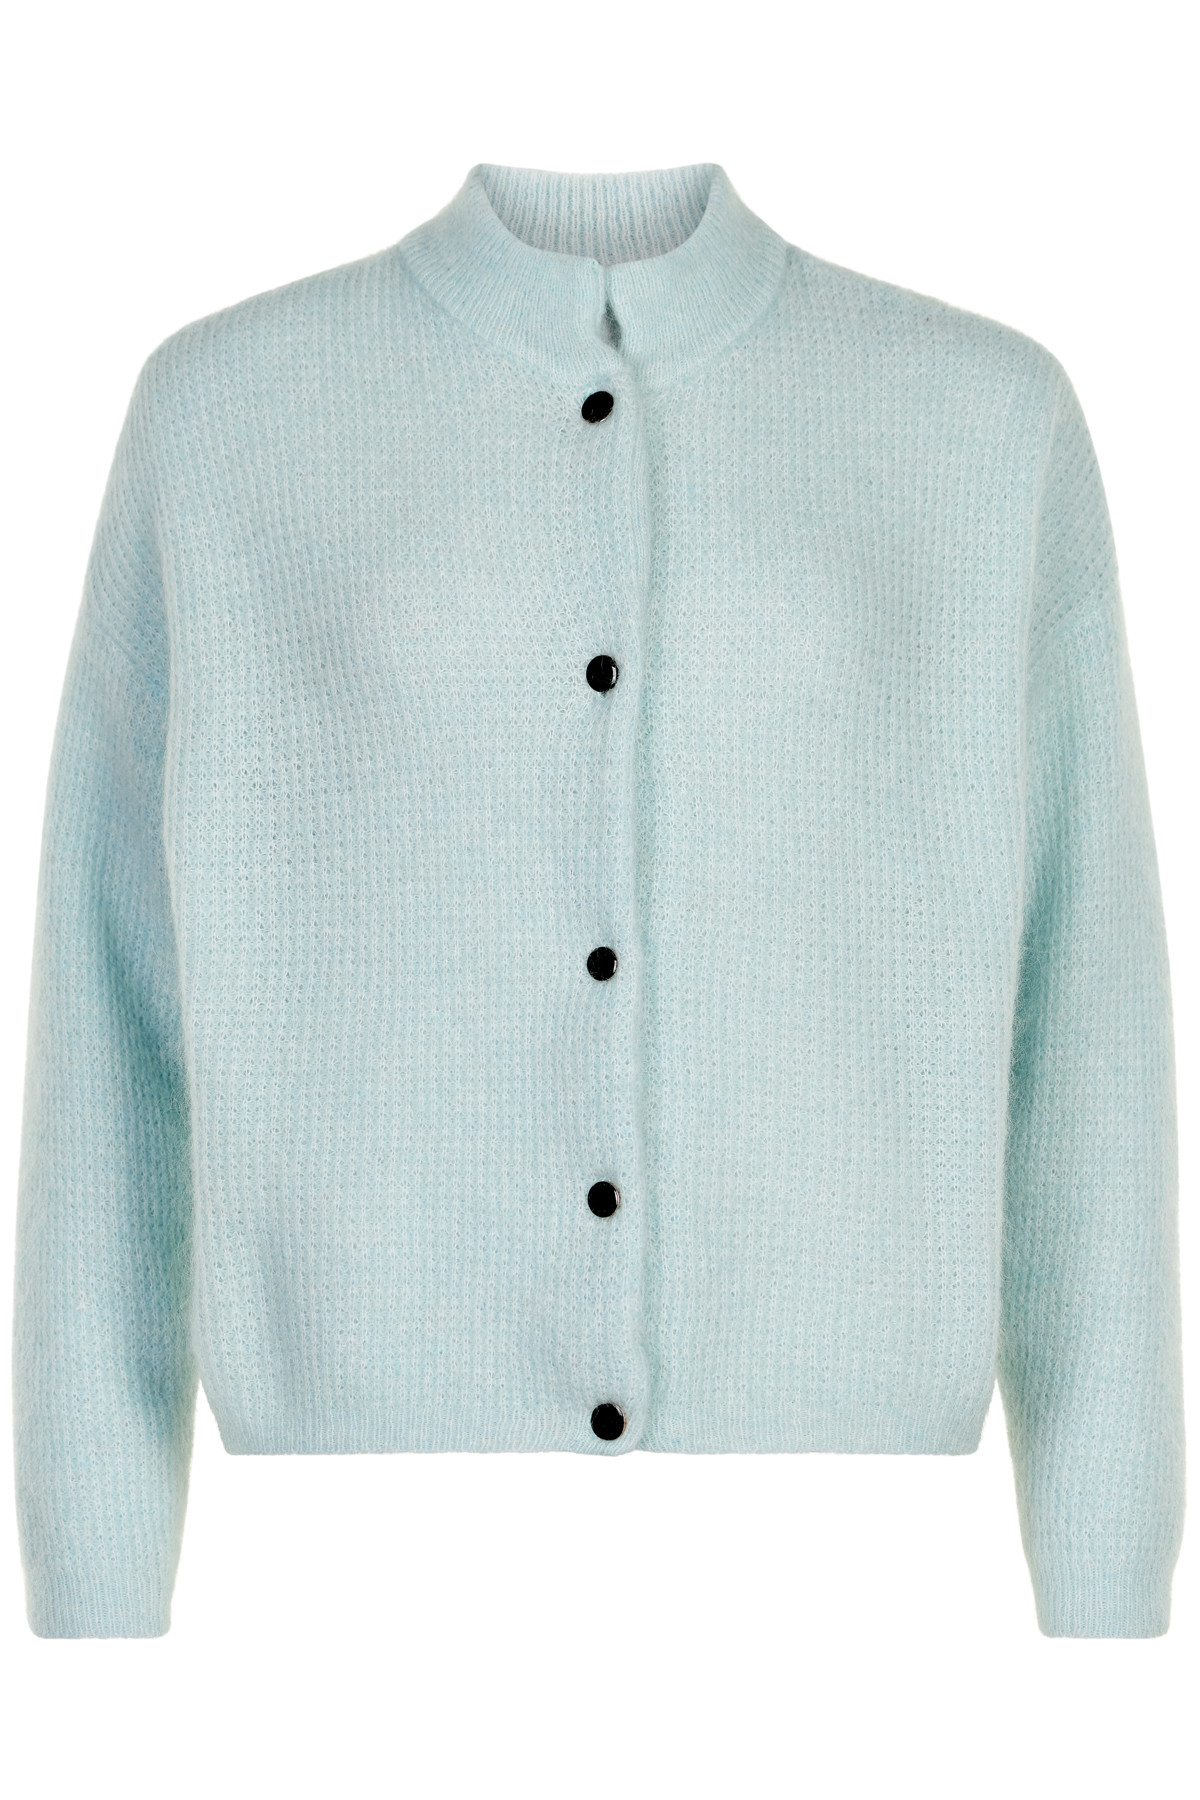 Image of   GESTUZ DEBBIEGZ SHORT CARDIGAN 10904126 I (Iced Aqua 90667, S)